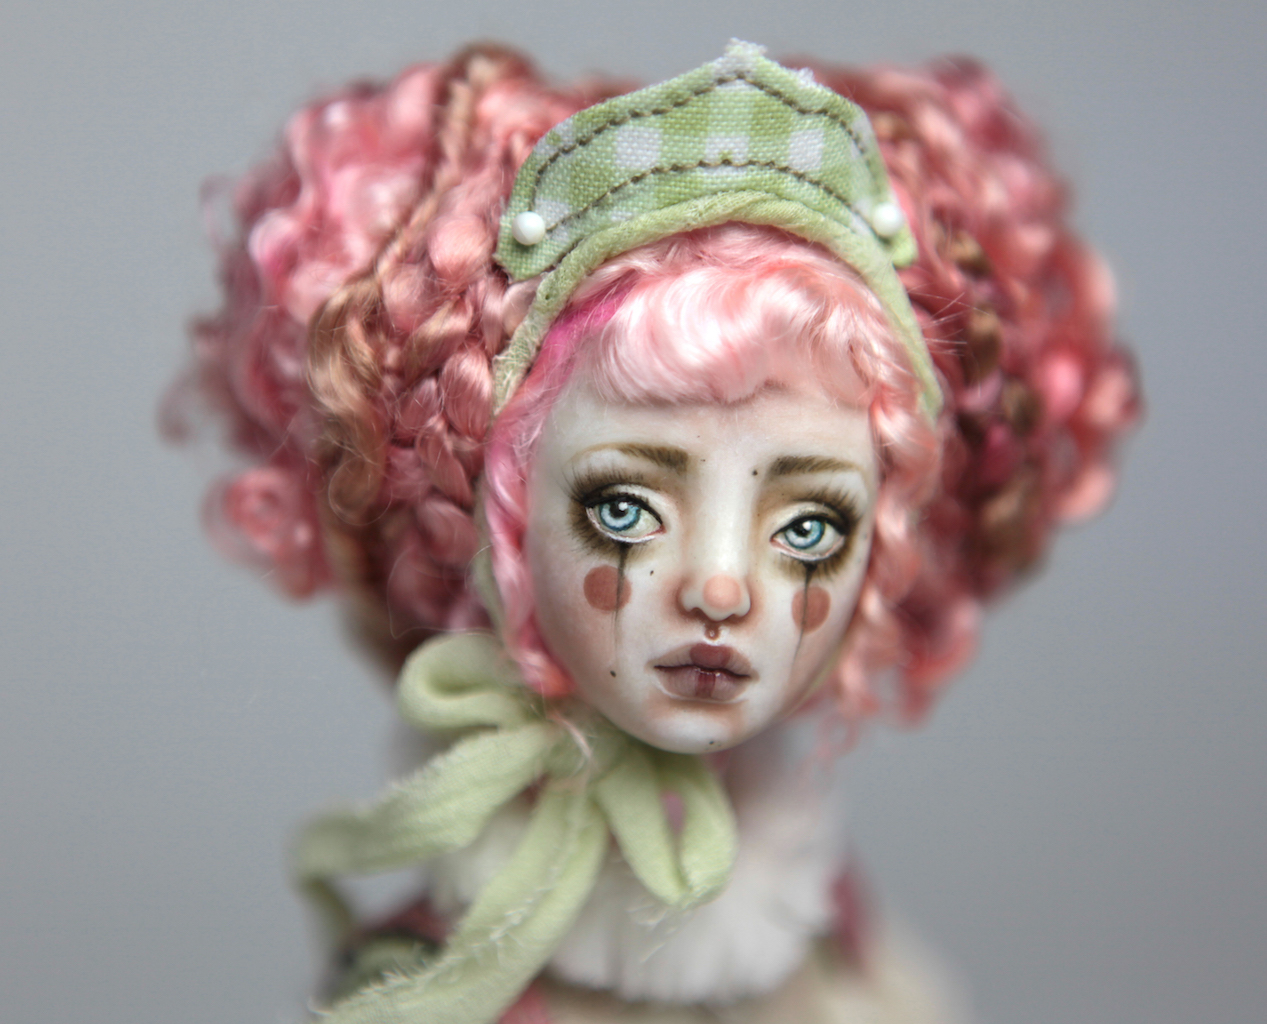 Porcelain BJD Dolls Victorian Strawberry47 15 Victorian Strawberry Clown Porcelain BJD Doll Renaissance